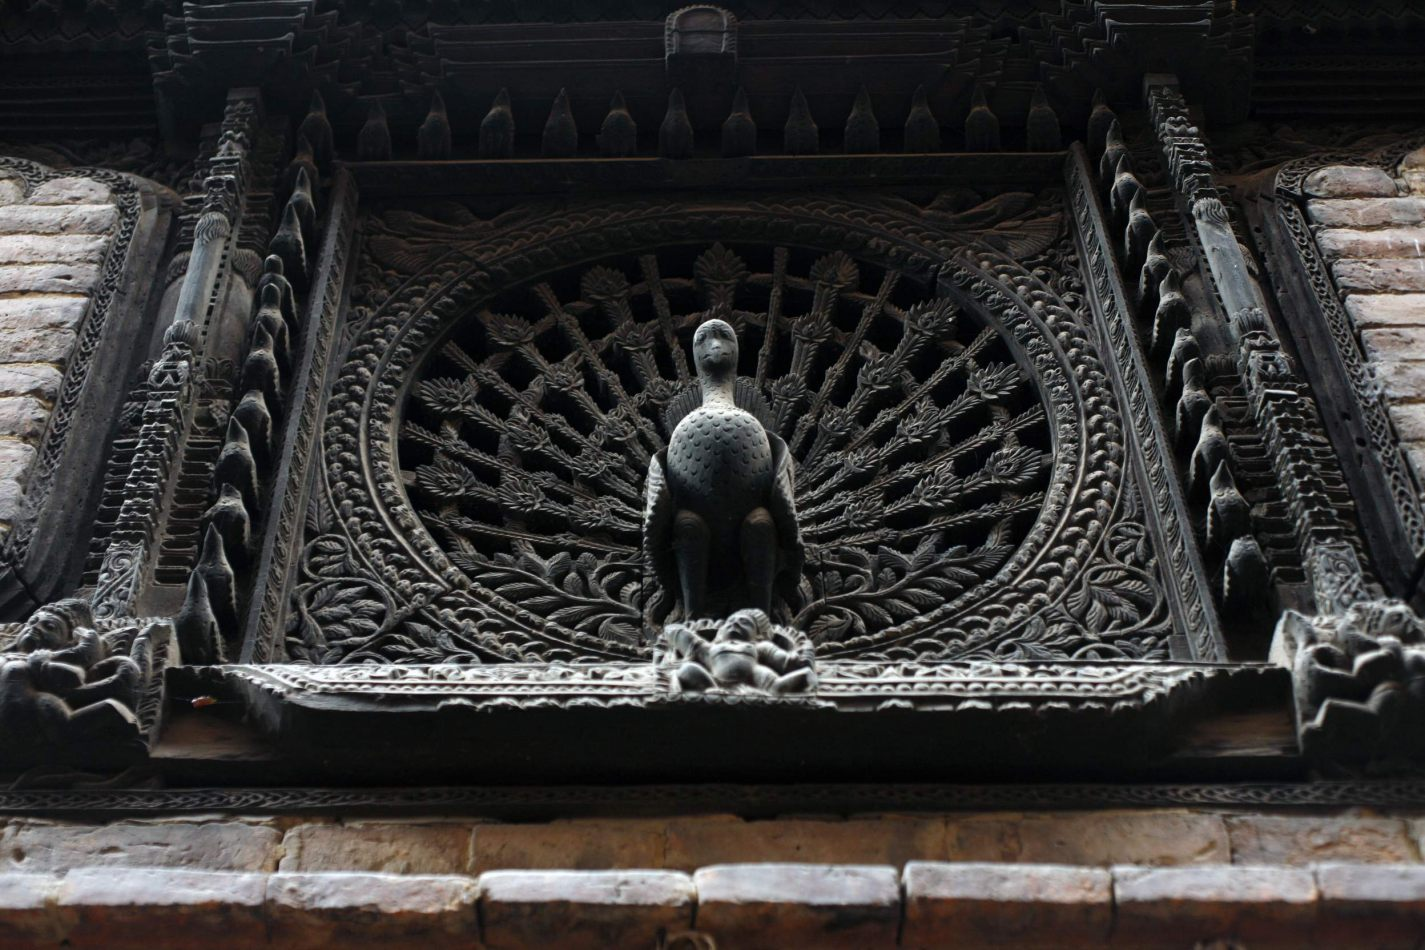 Anthony Ellis Photography: Transition - म्हयखाझ्या (Peacock Window)